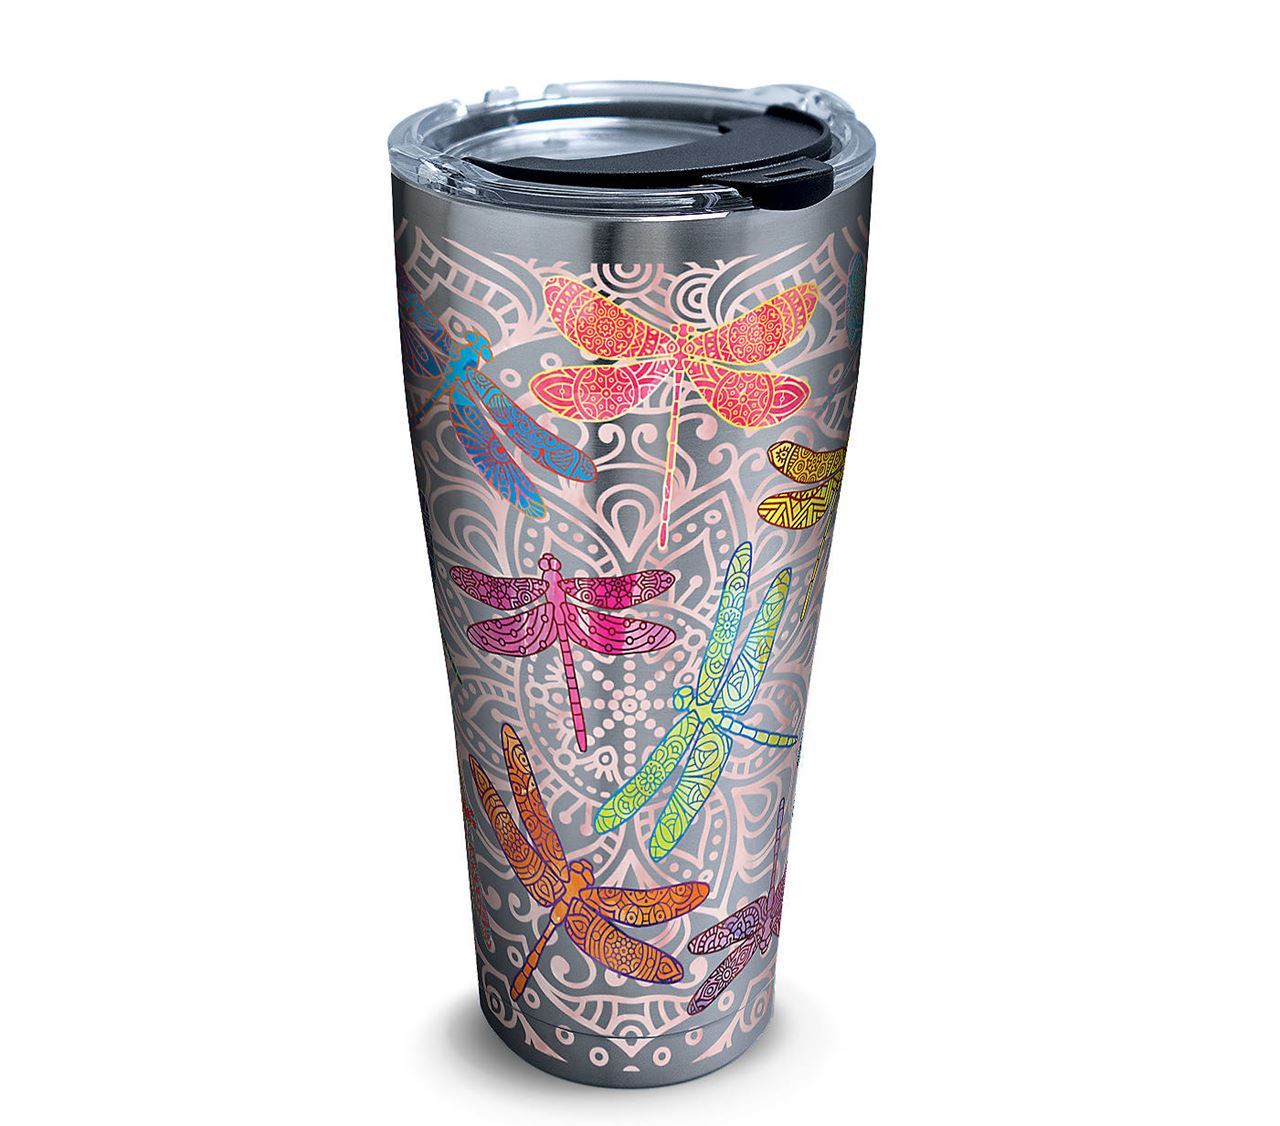 Dragonfly Mandala 30oz. Stainless Steel Tumbler by Tervis